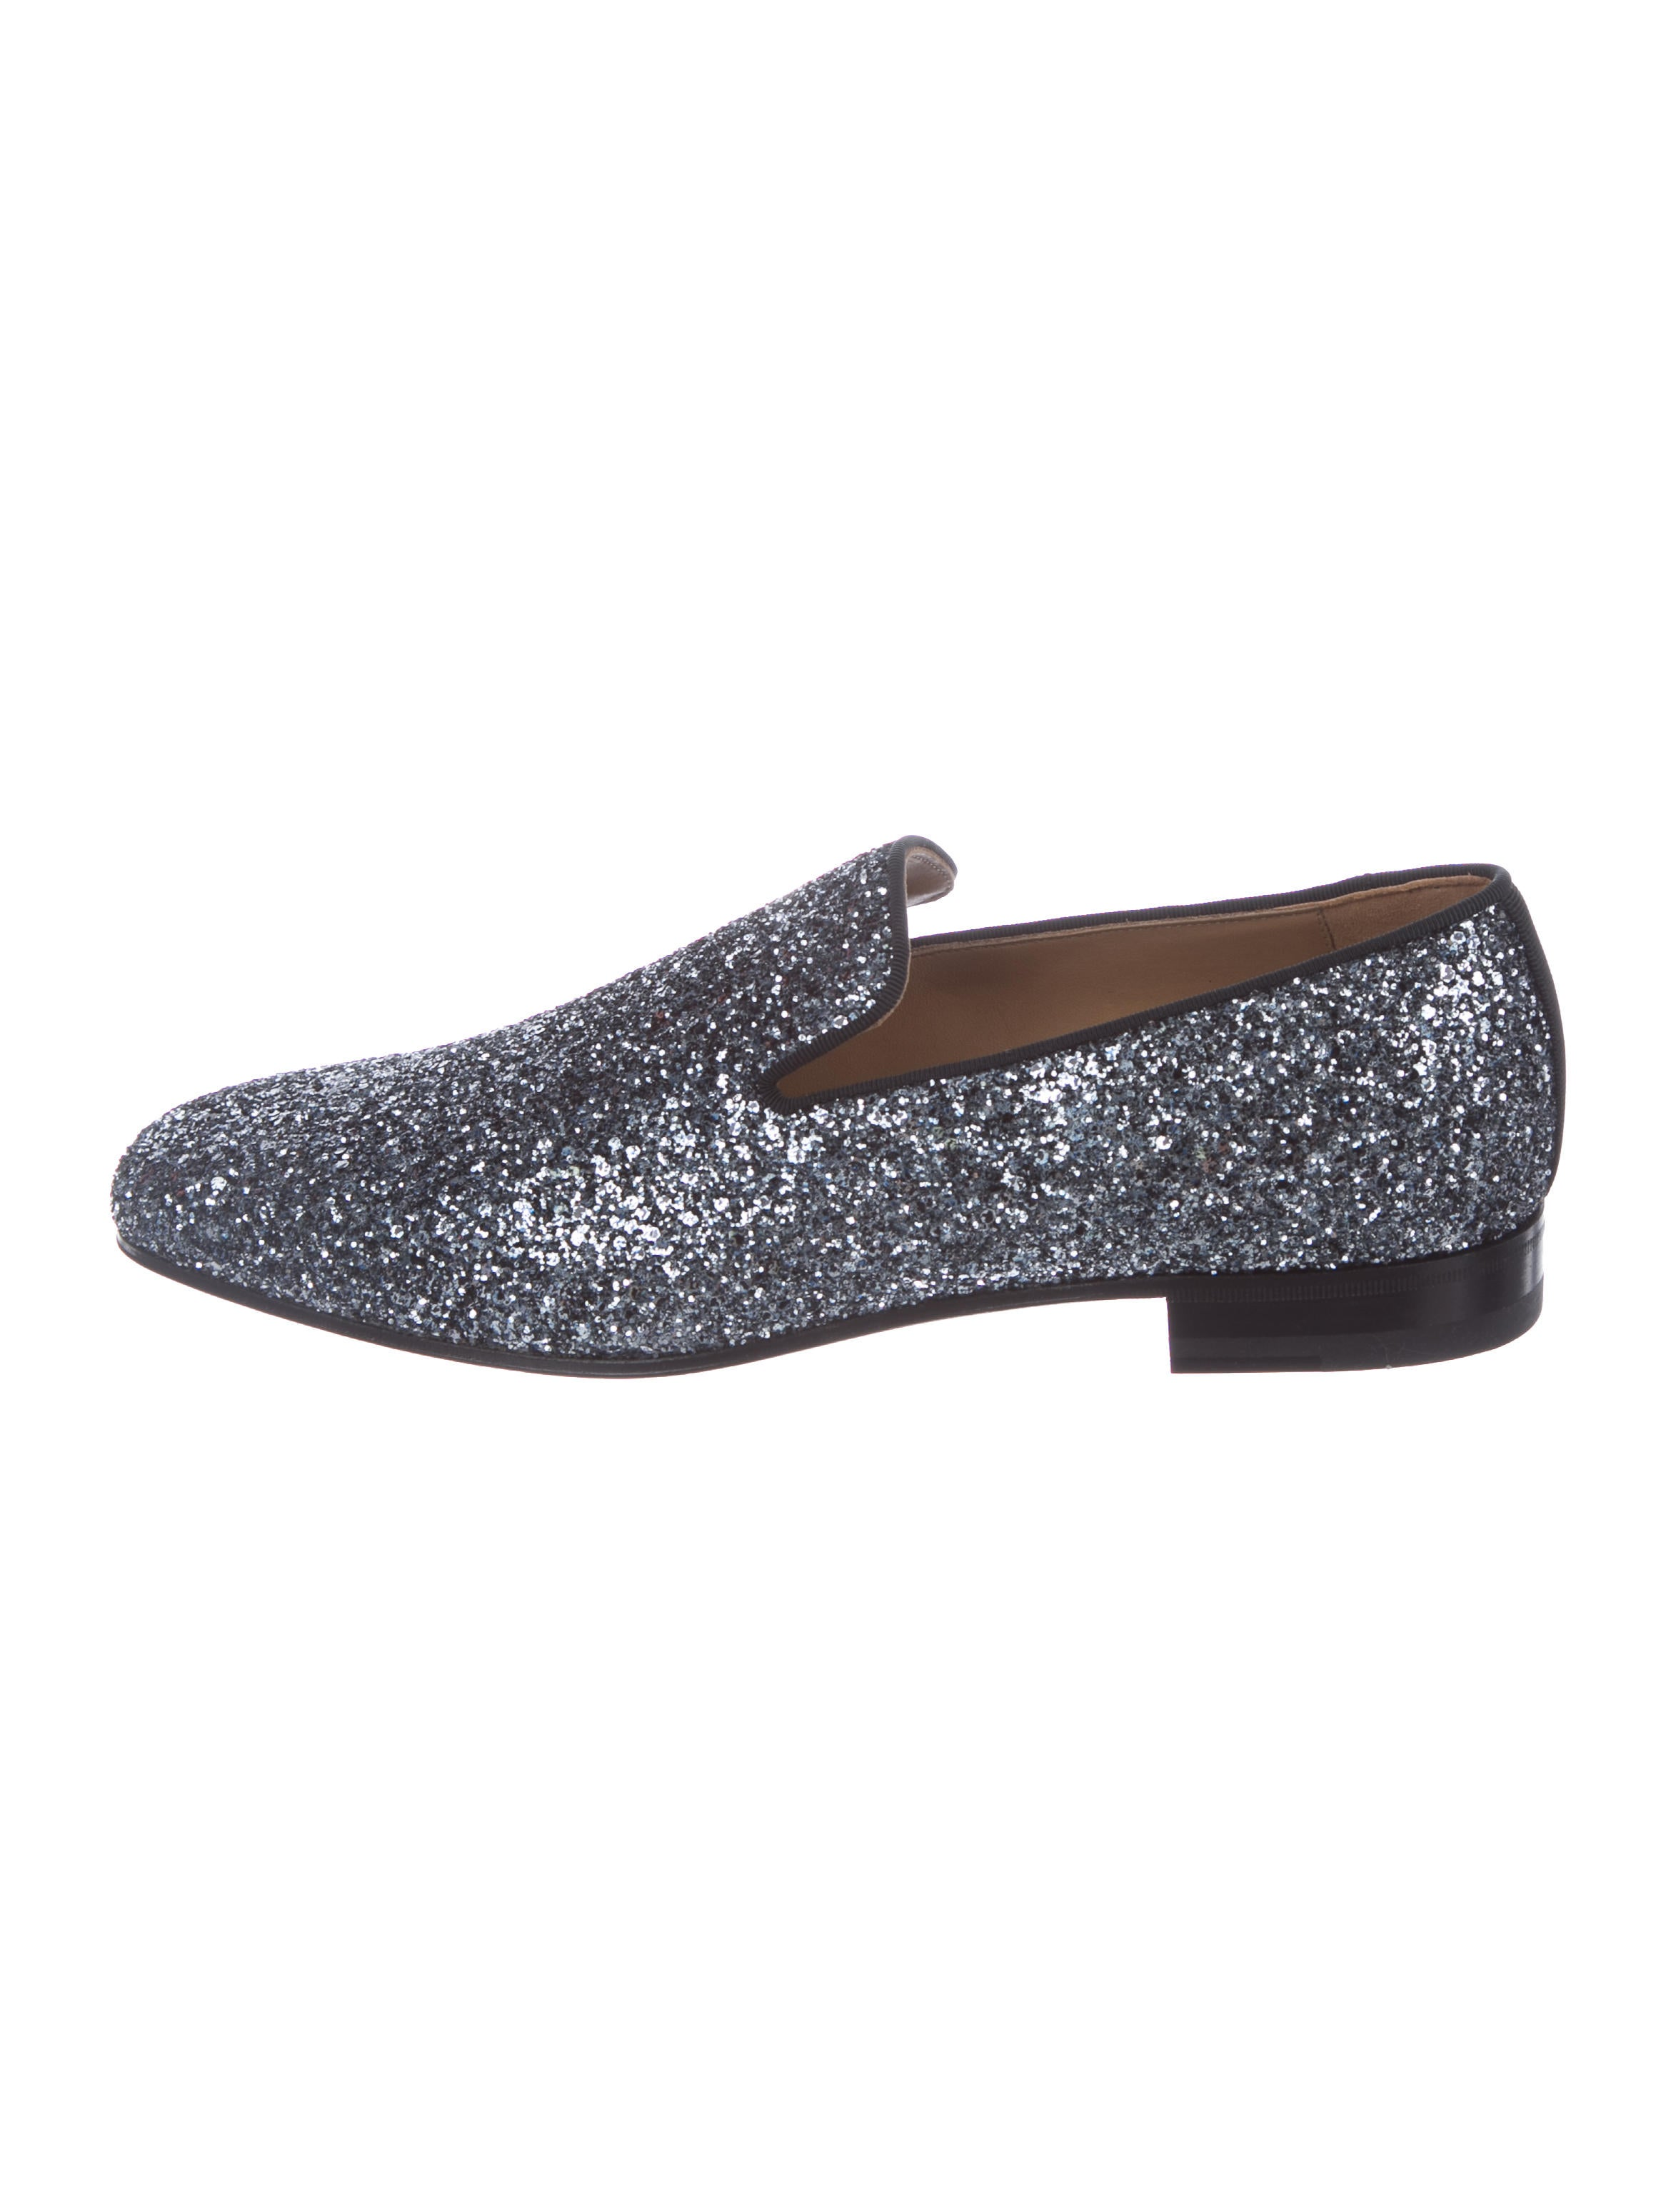 buy cheap largest supplier sale limited edition Christian Louboutin Dandy Glitter Loafers w/ Tags cFC99xnKy